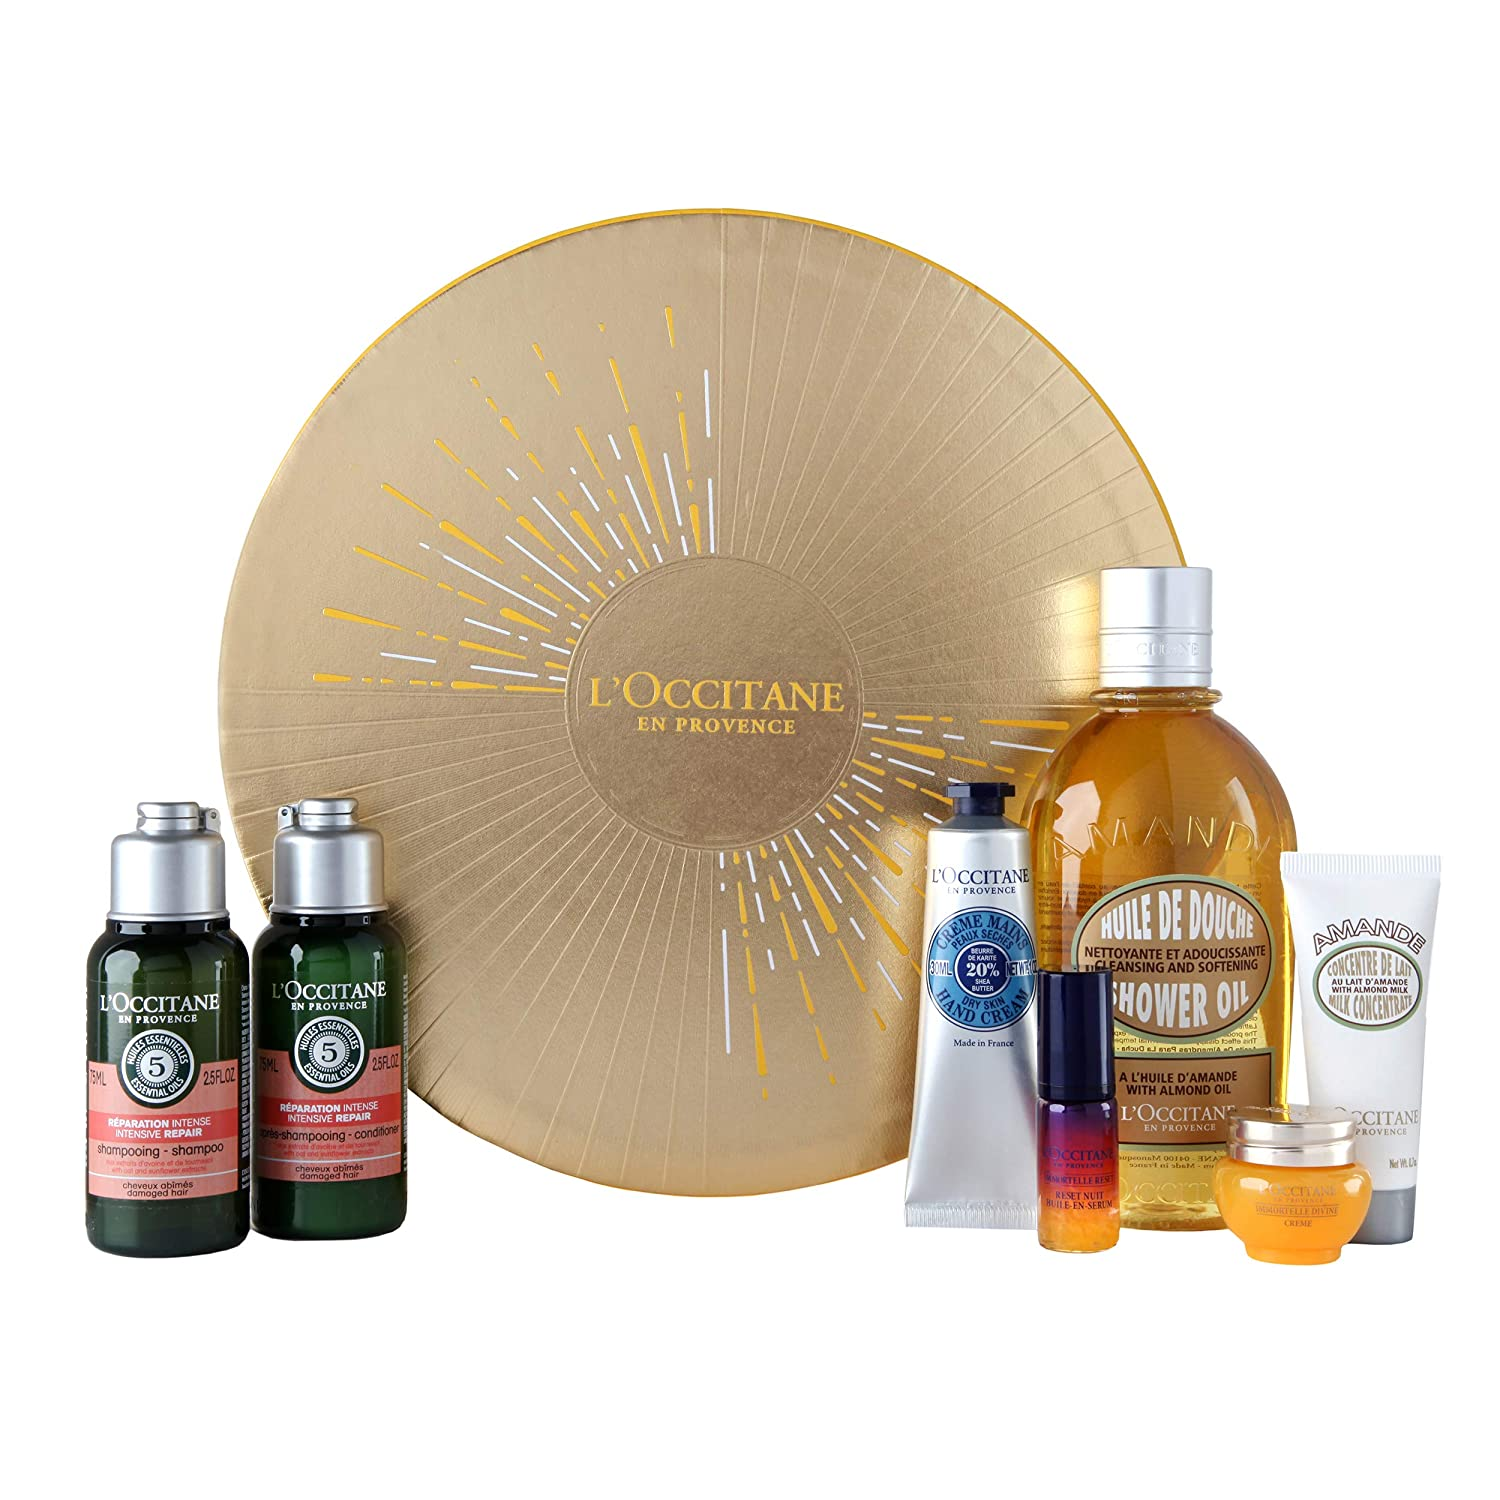 L'Occitane Head-to-toe Beauty Favorites Kit: Premium Beauty